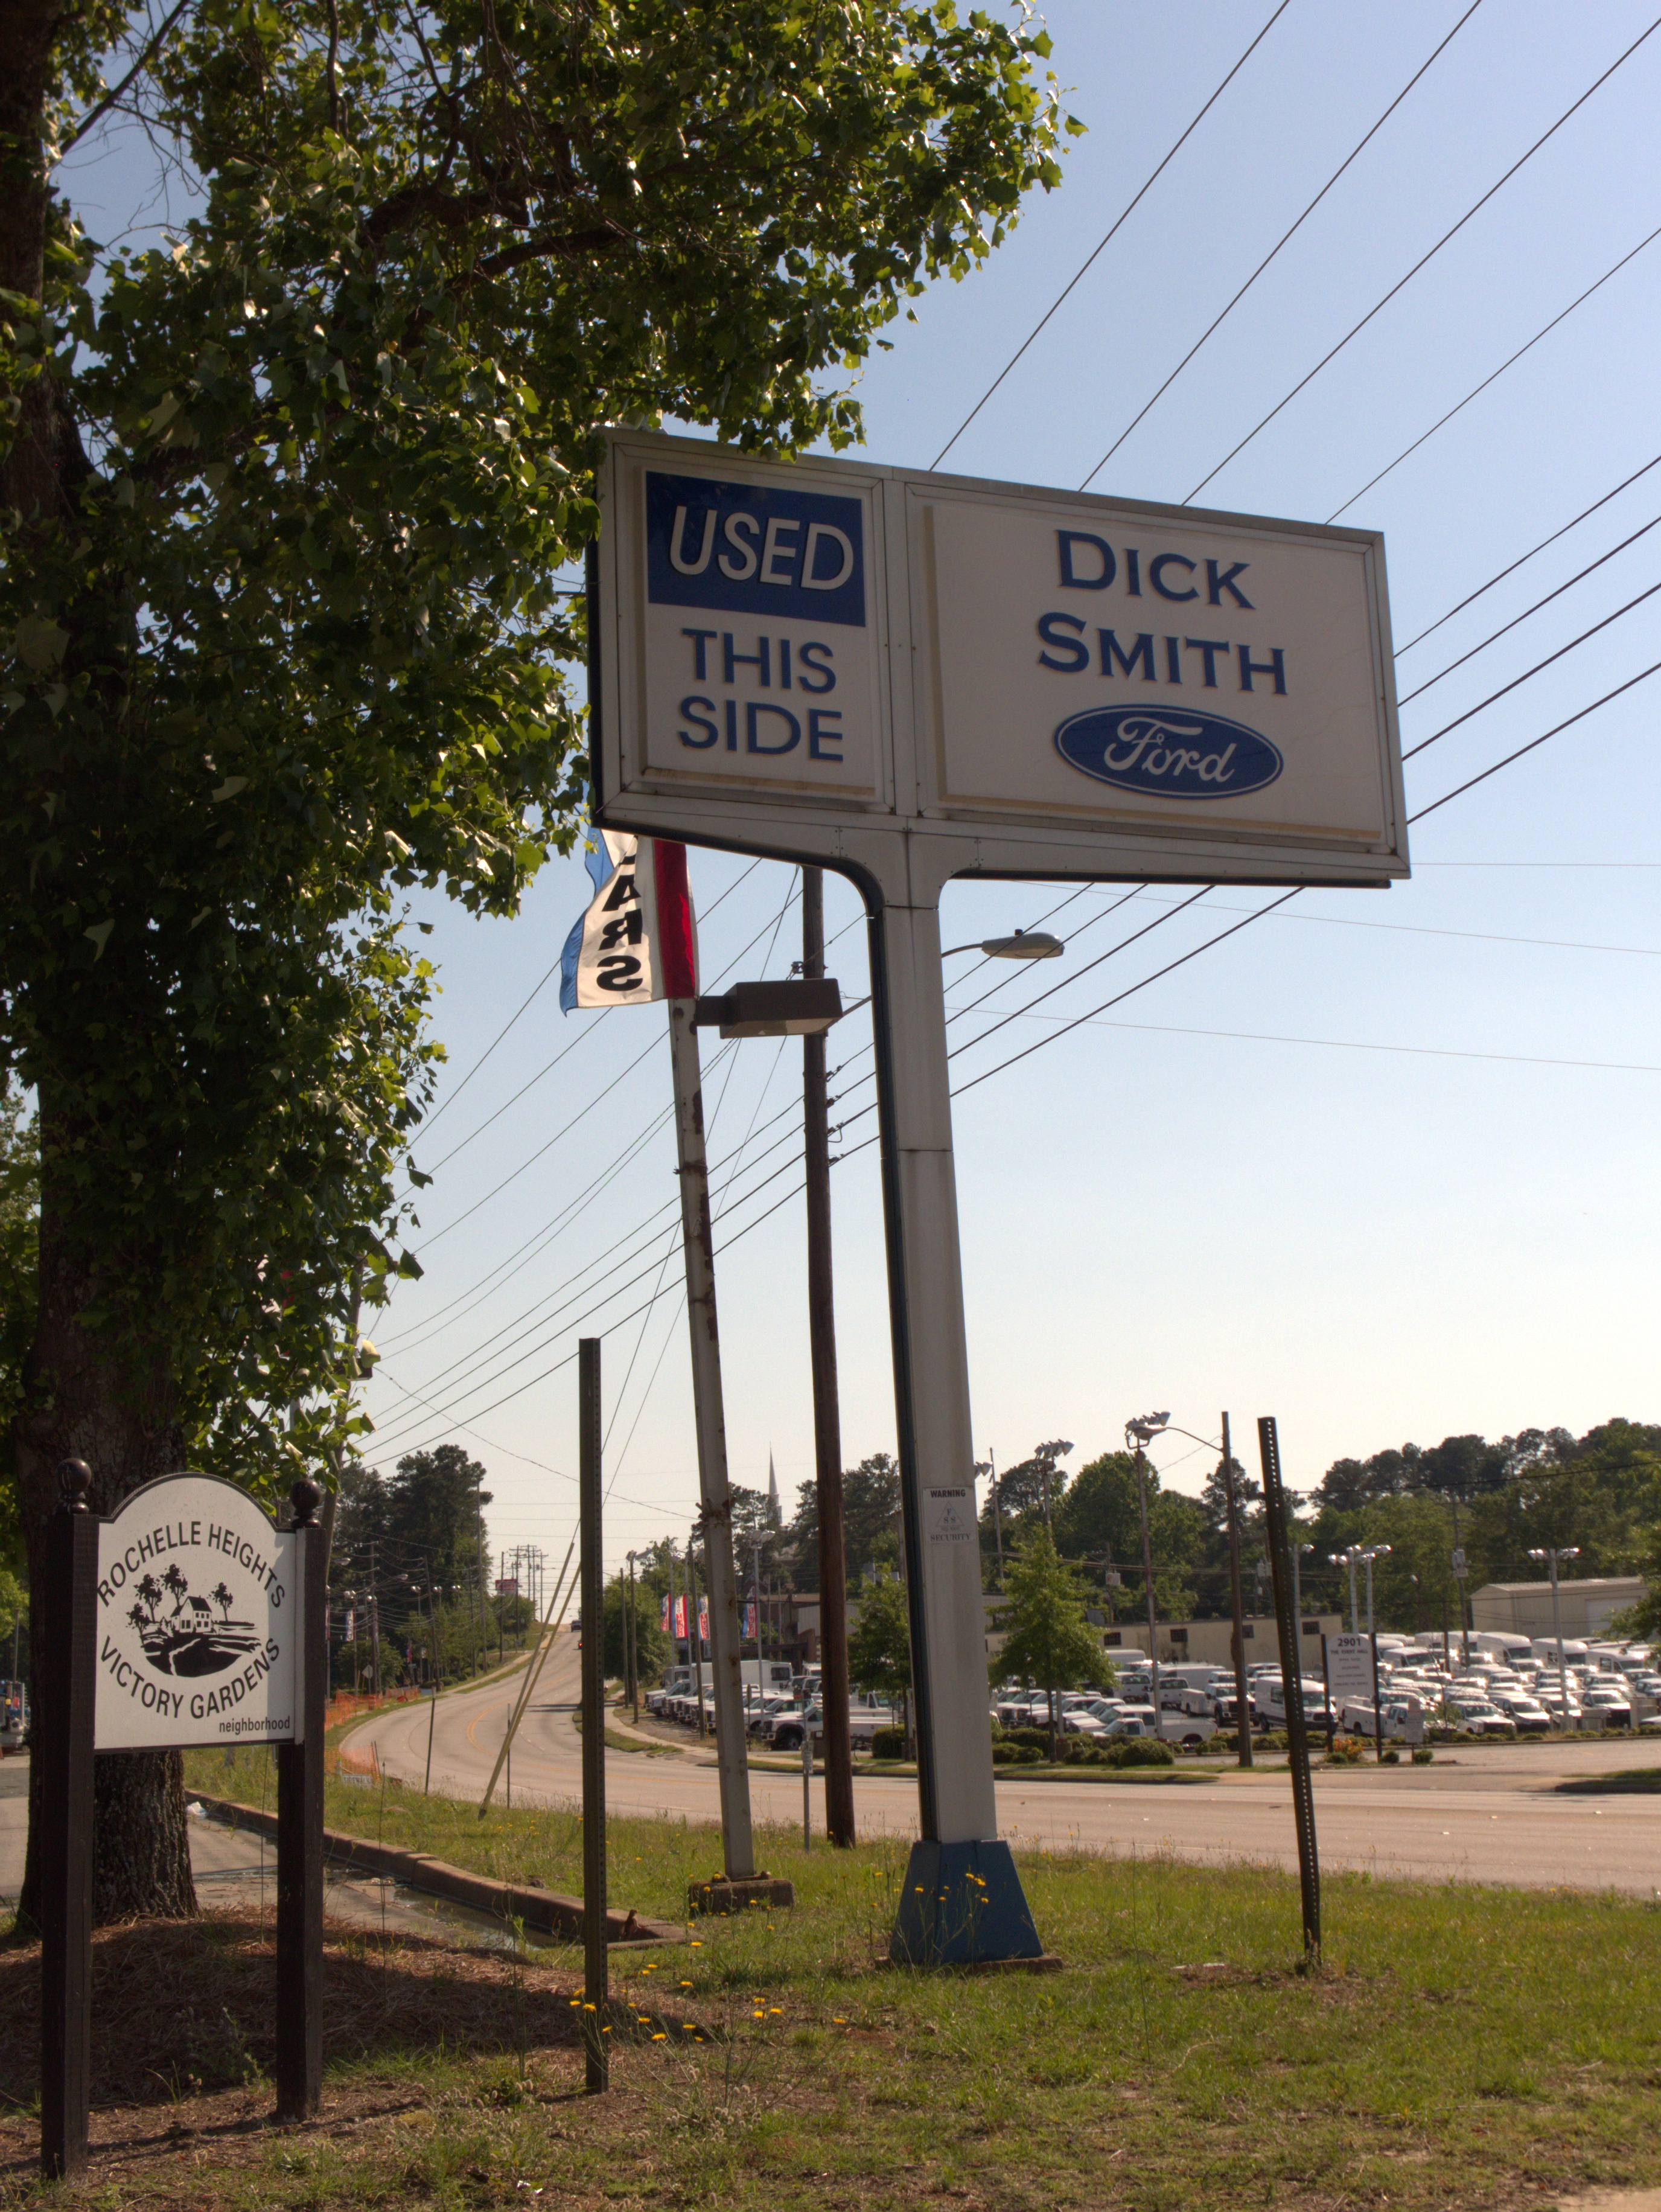 Dick Smith Ford 2800 Two Notch Road Early May 2016 Moved At